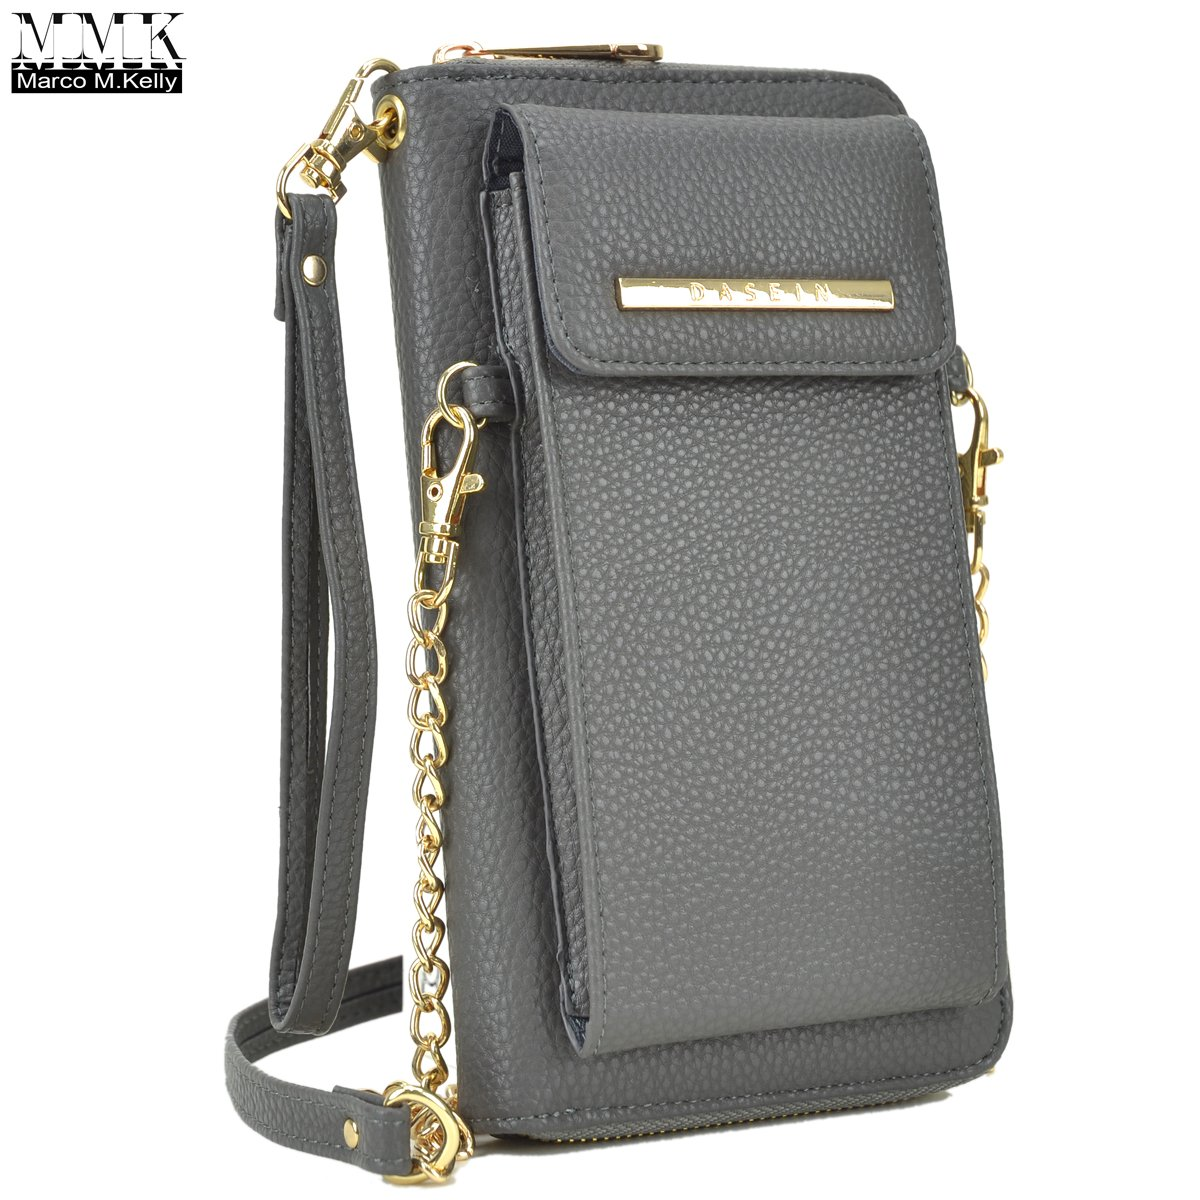 MMK Collection Easy-To-Carry Small Size Women Crossbody Wallet, Organizer pouch, with Phone case and Detachable Chain Strap(3020) (MA-3020-GY)